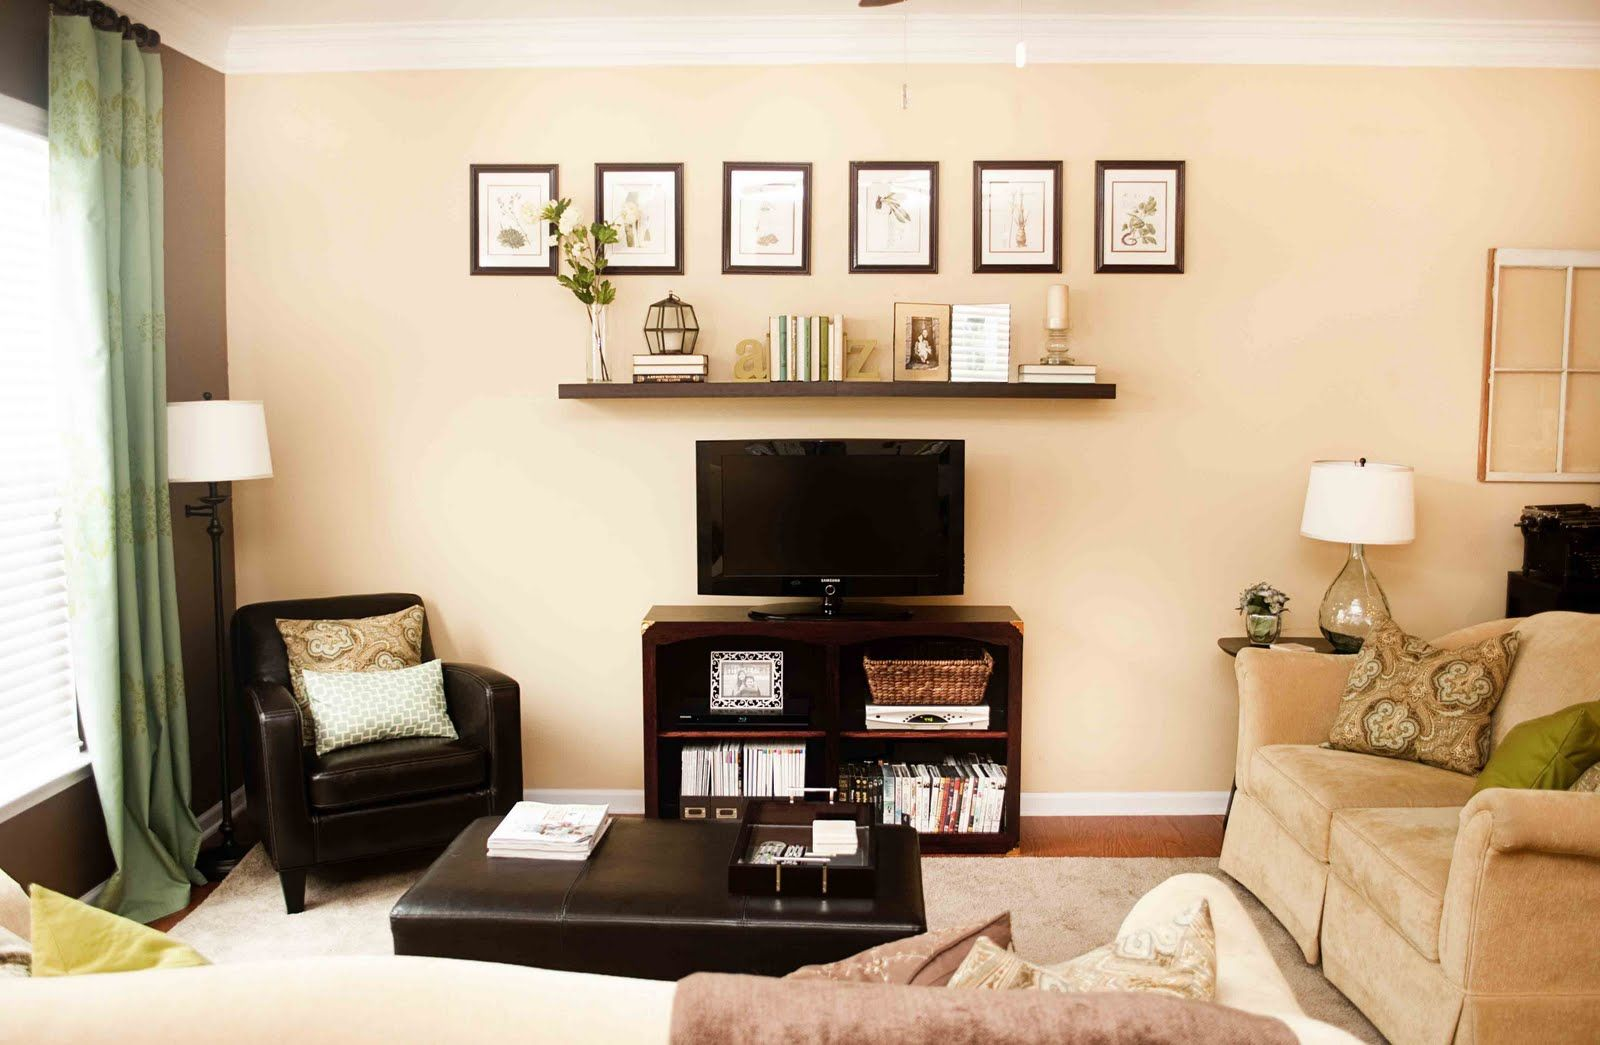 Pin By Kourtney Blomberg On Home Ideas In 2019 Living Room Room